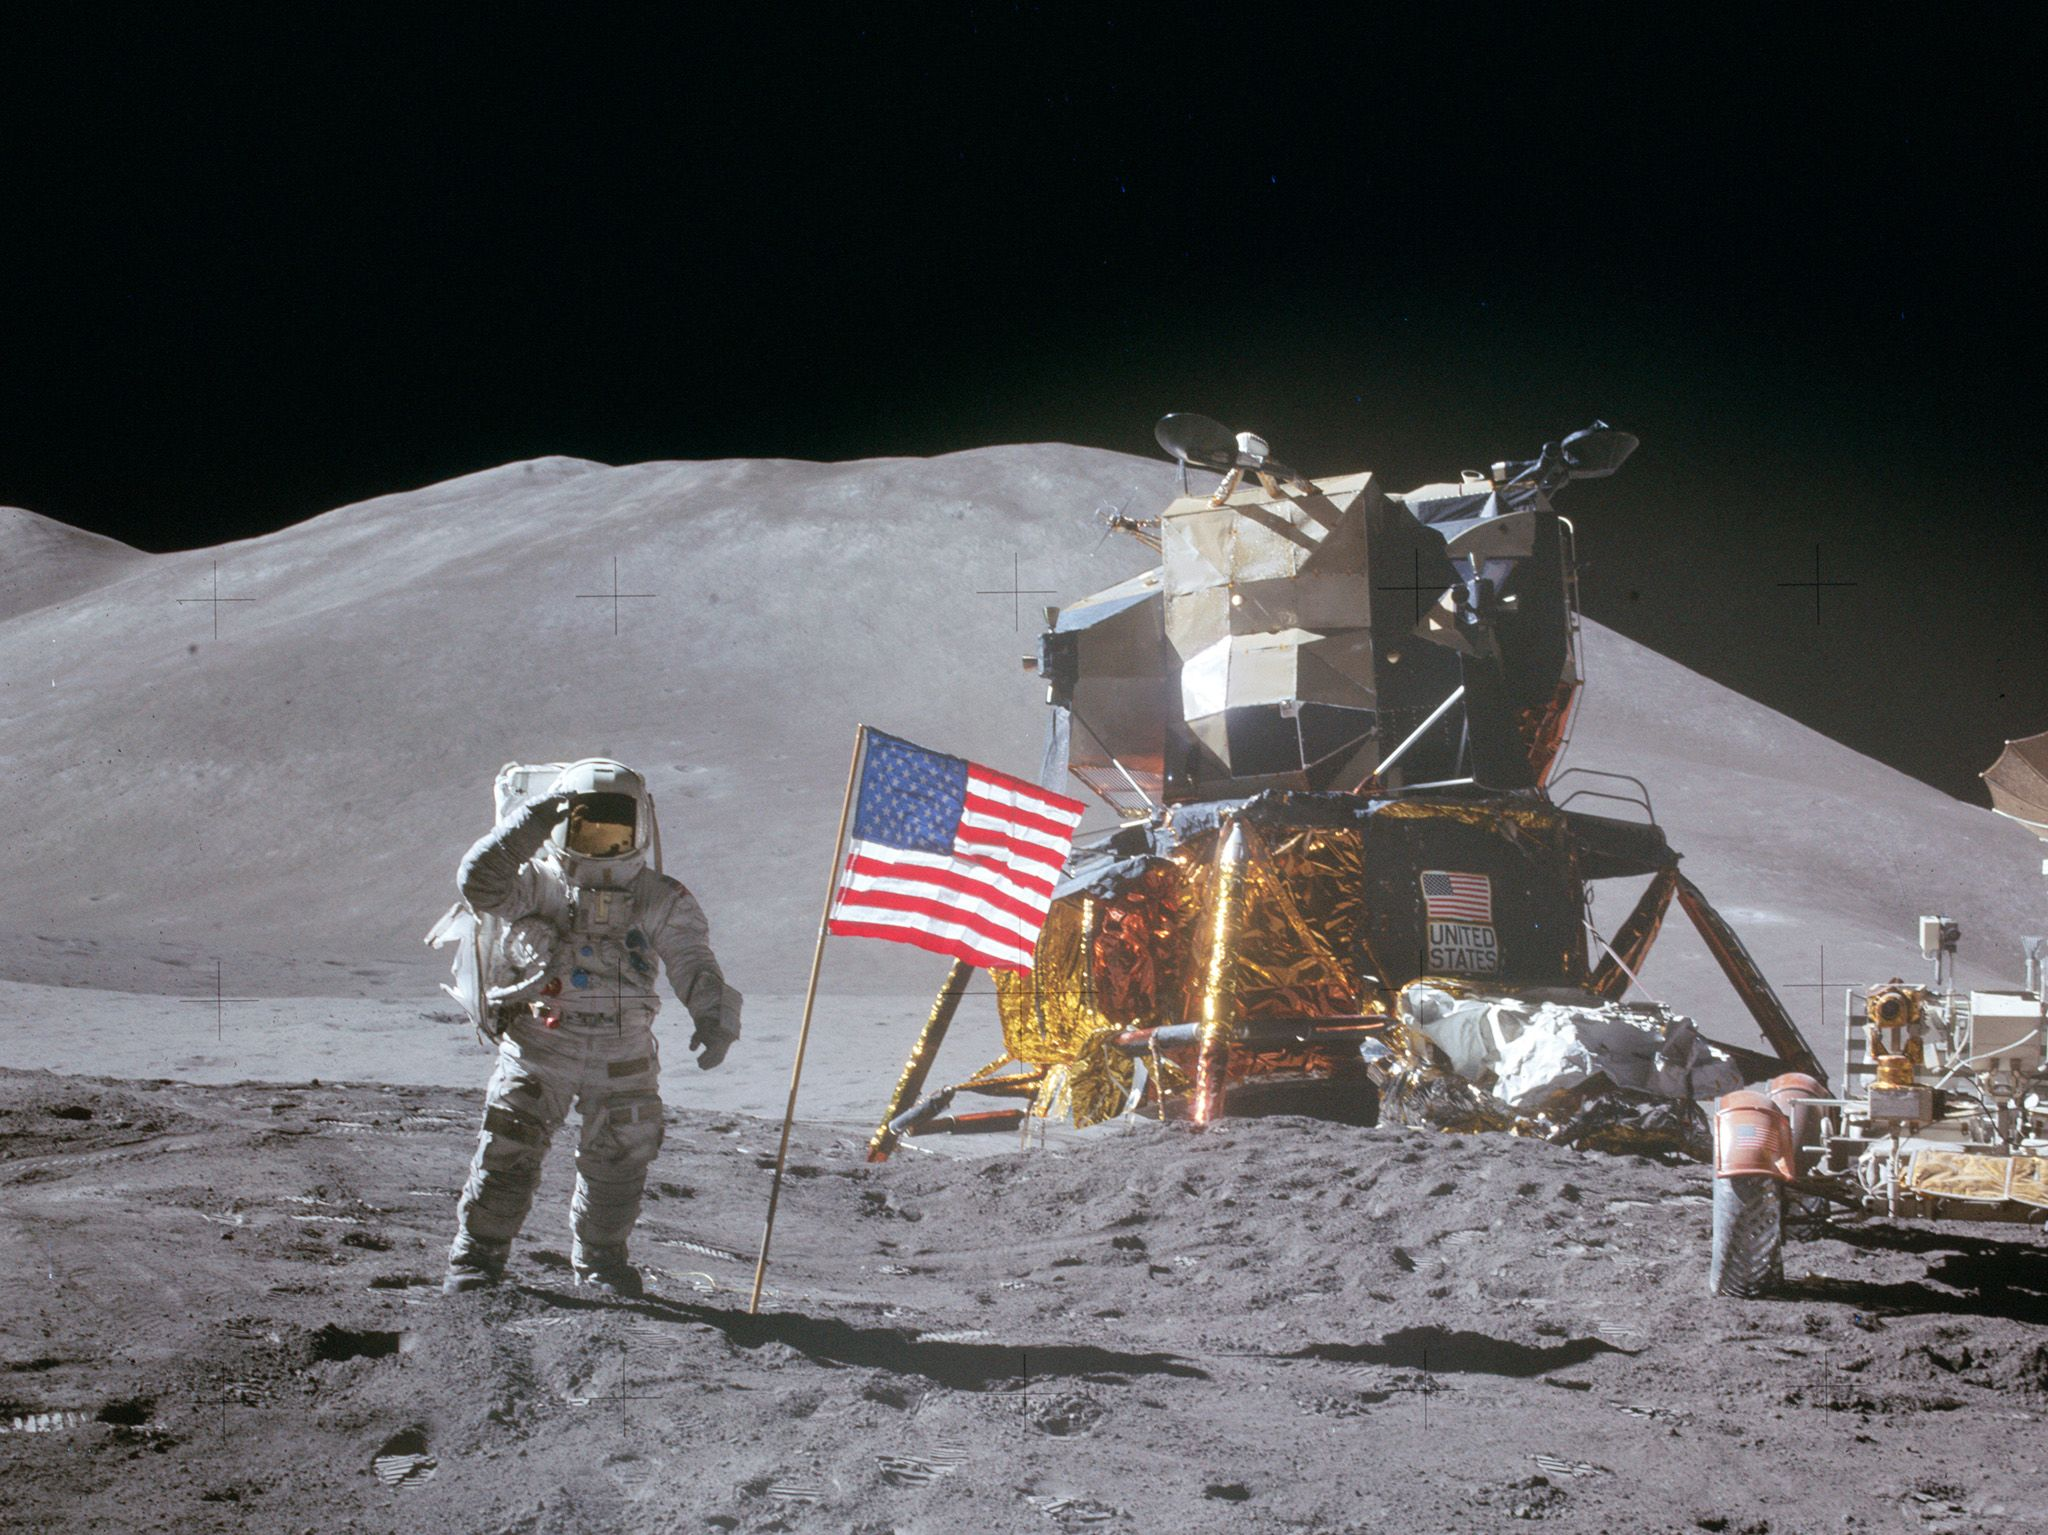 David Scott on Moon during Apollo 15.  This image is from Apollo: Missions to the Moon. [Photo of the day - ژولیه 2019]